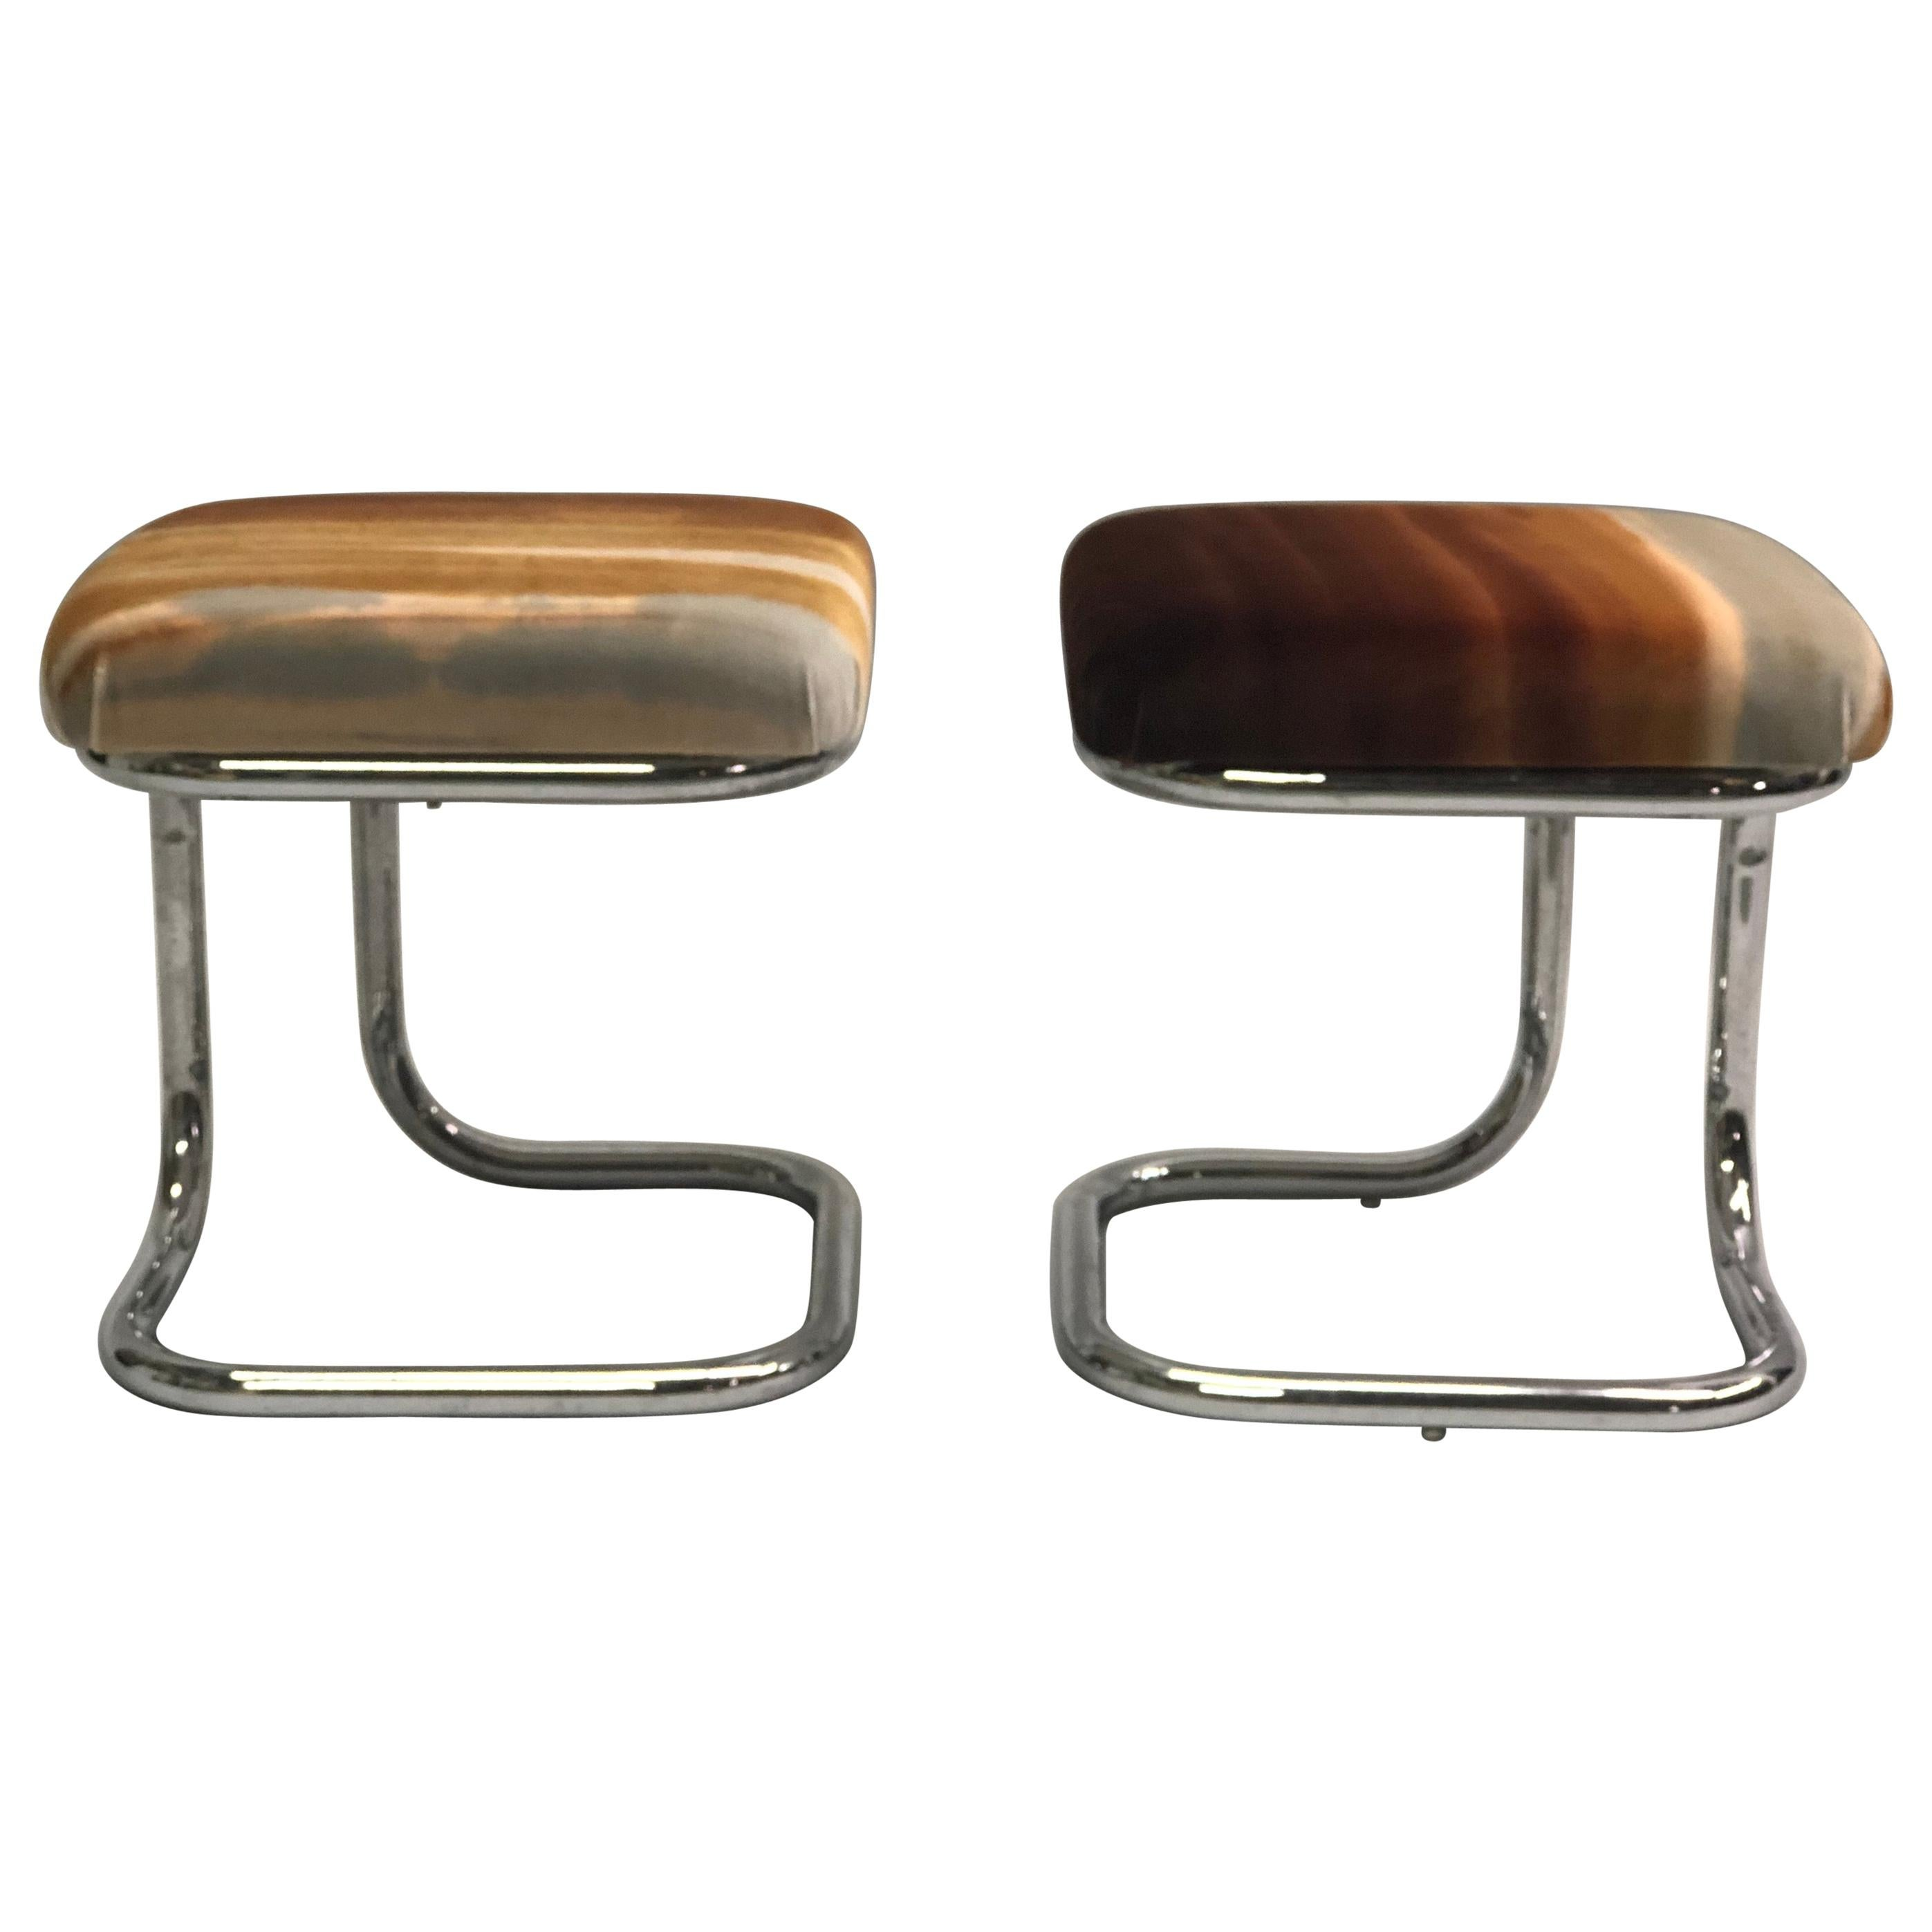 Pair of French Modernist 'Bauhaus' Stools with Upholstered Seats by Hermès